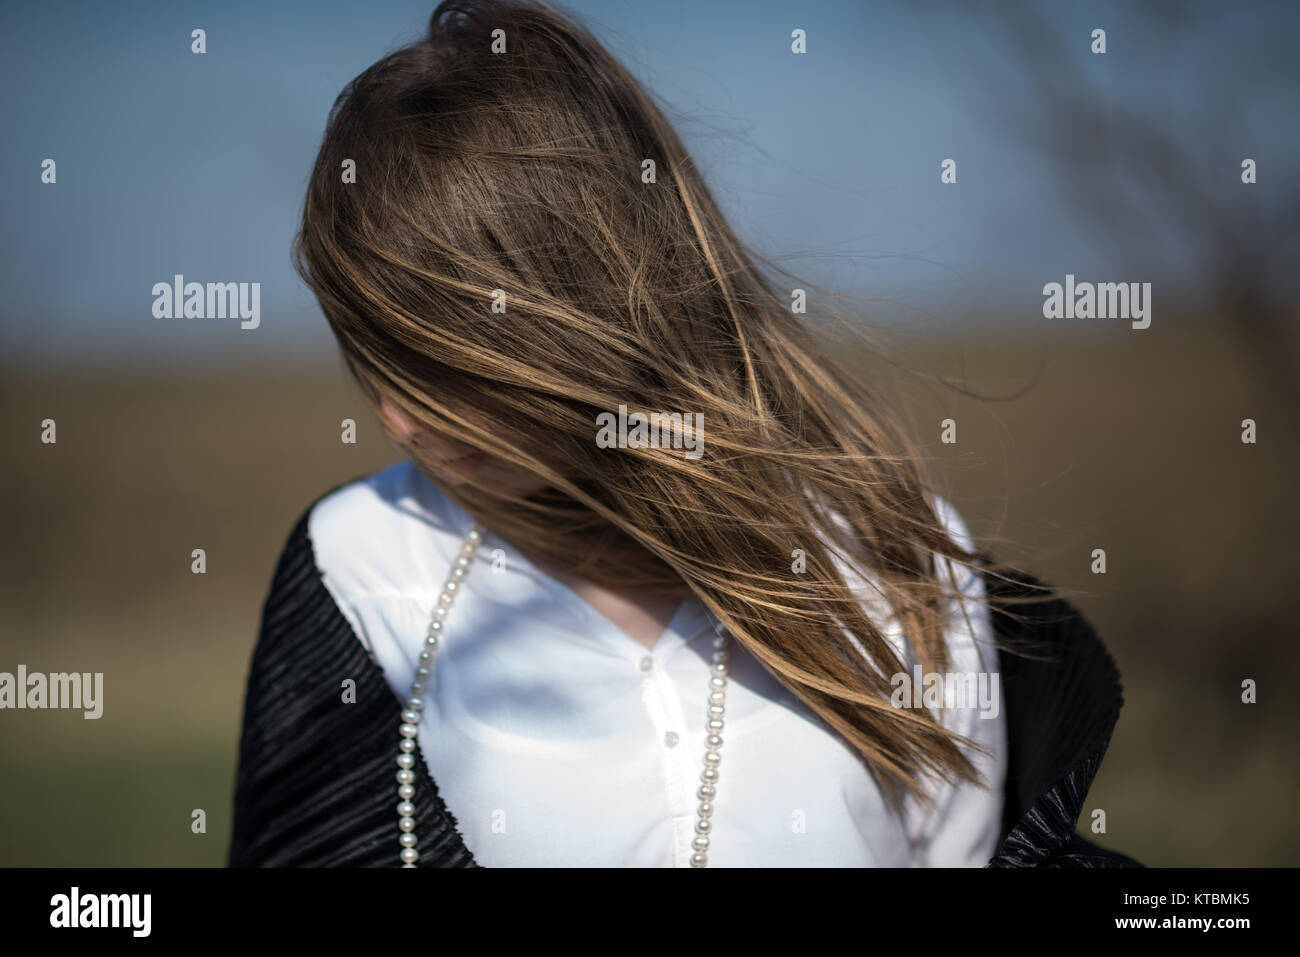 A girl in the wind - Stock Image